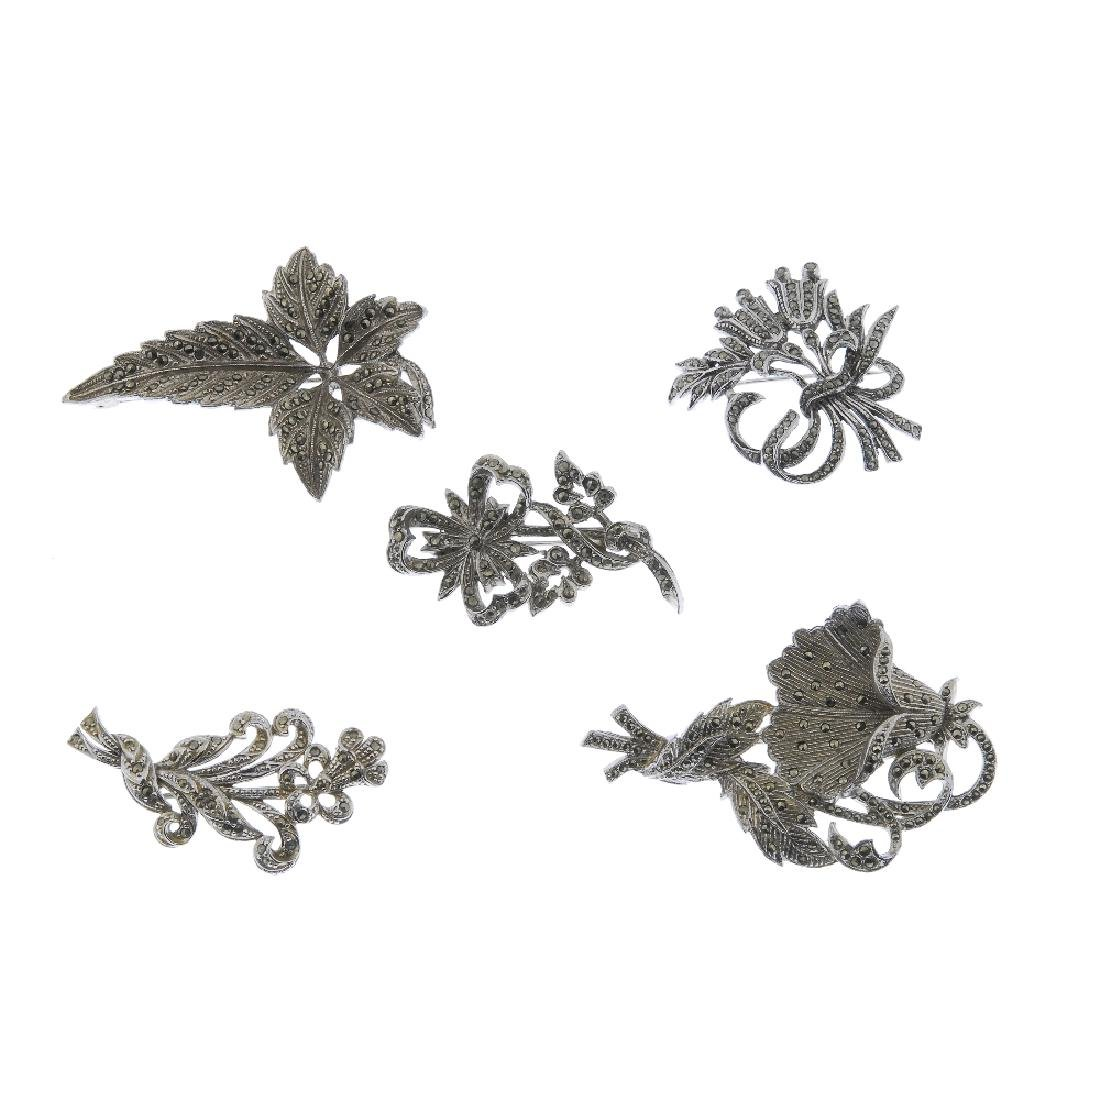 A selection of marcasite jewellery. To include animal